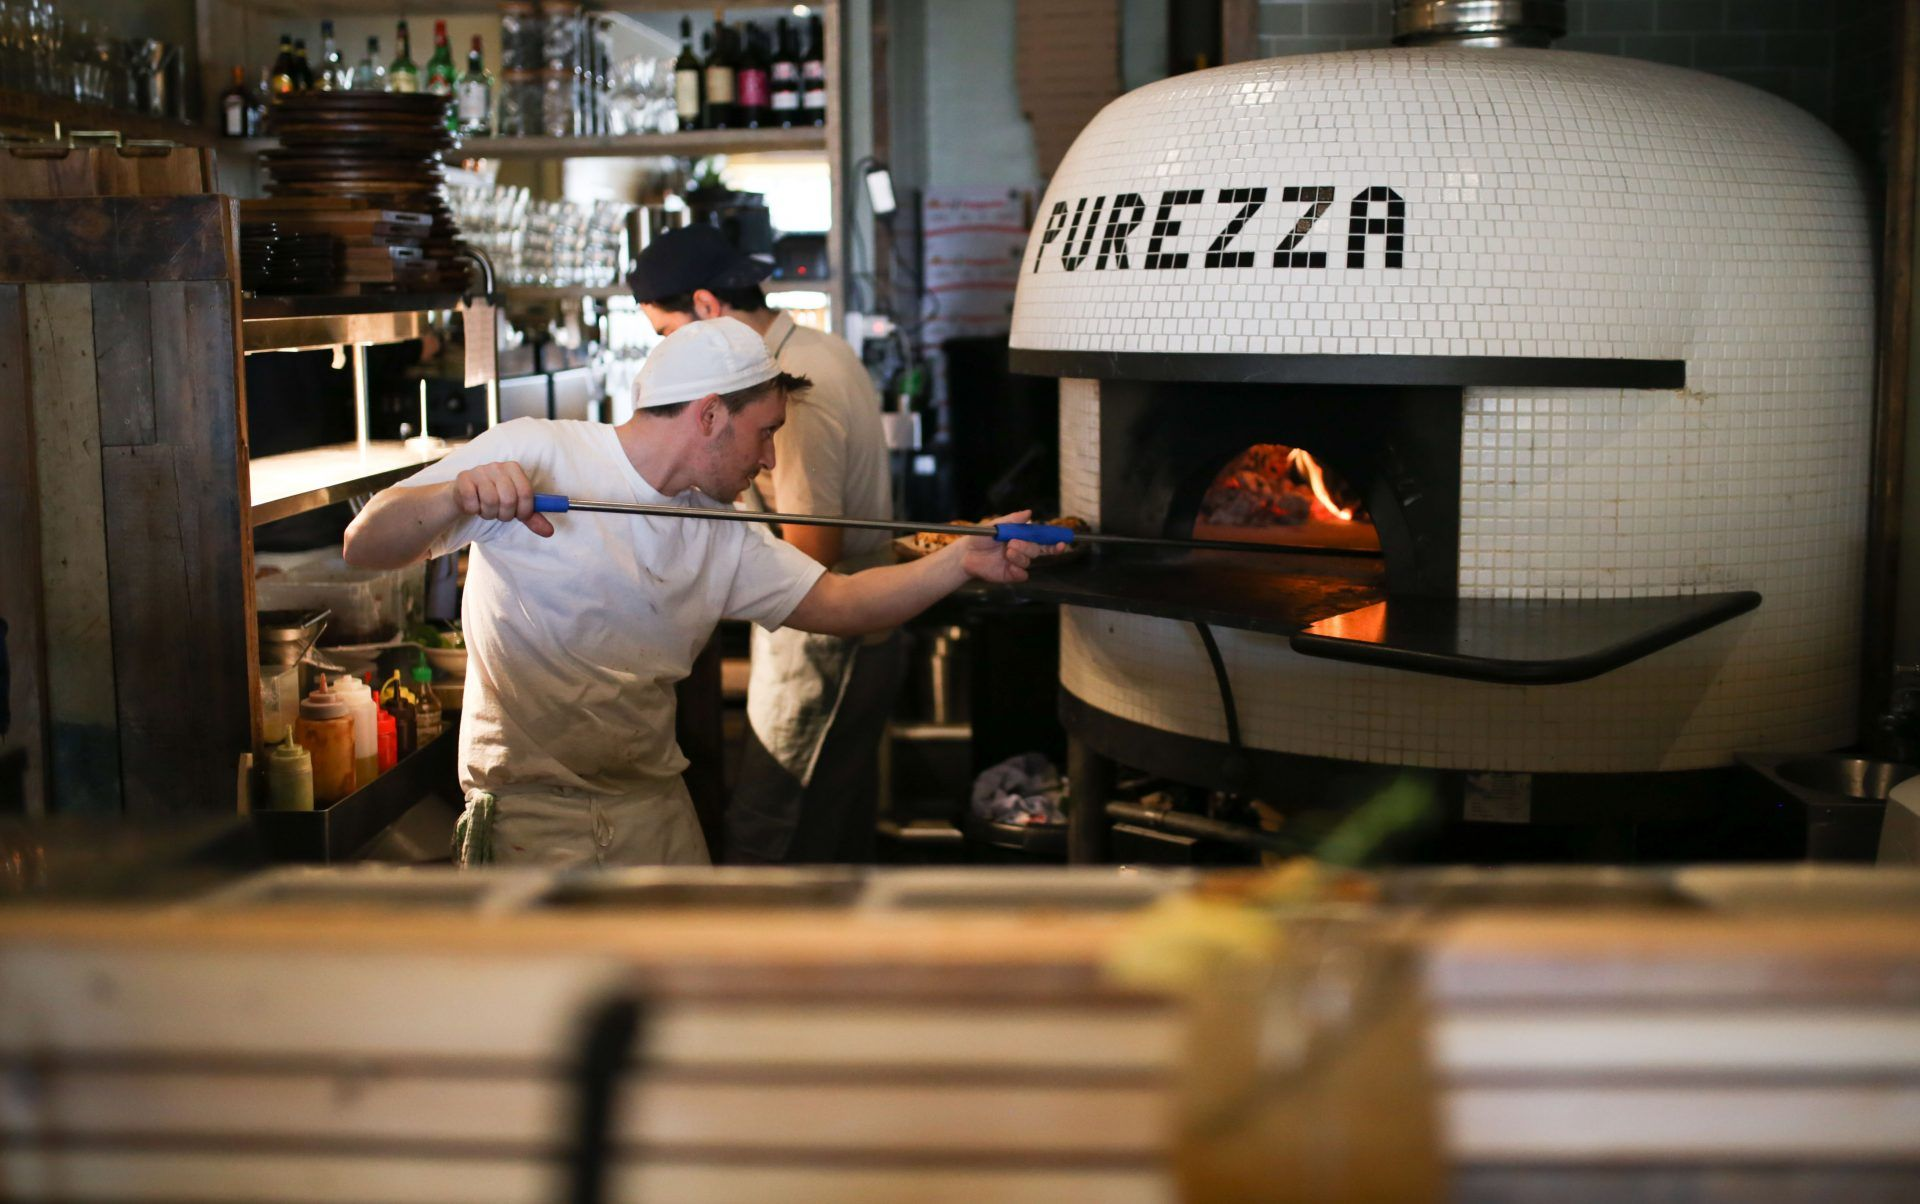 Purezza-Vegan-Restaurant-Brighton_2572-e1493160501432